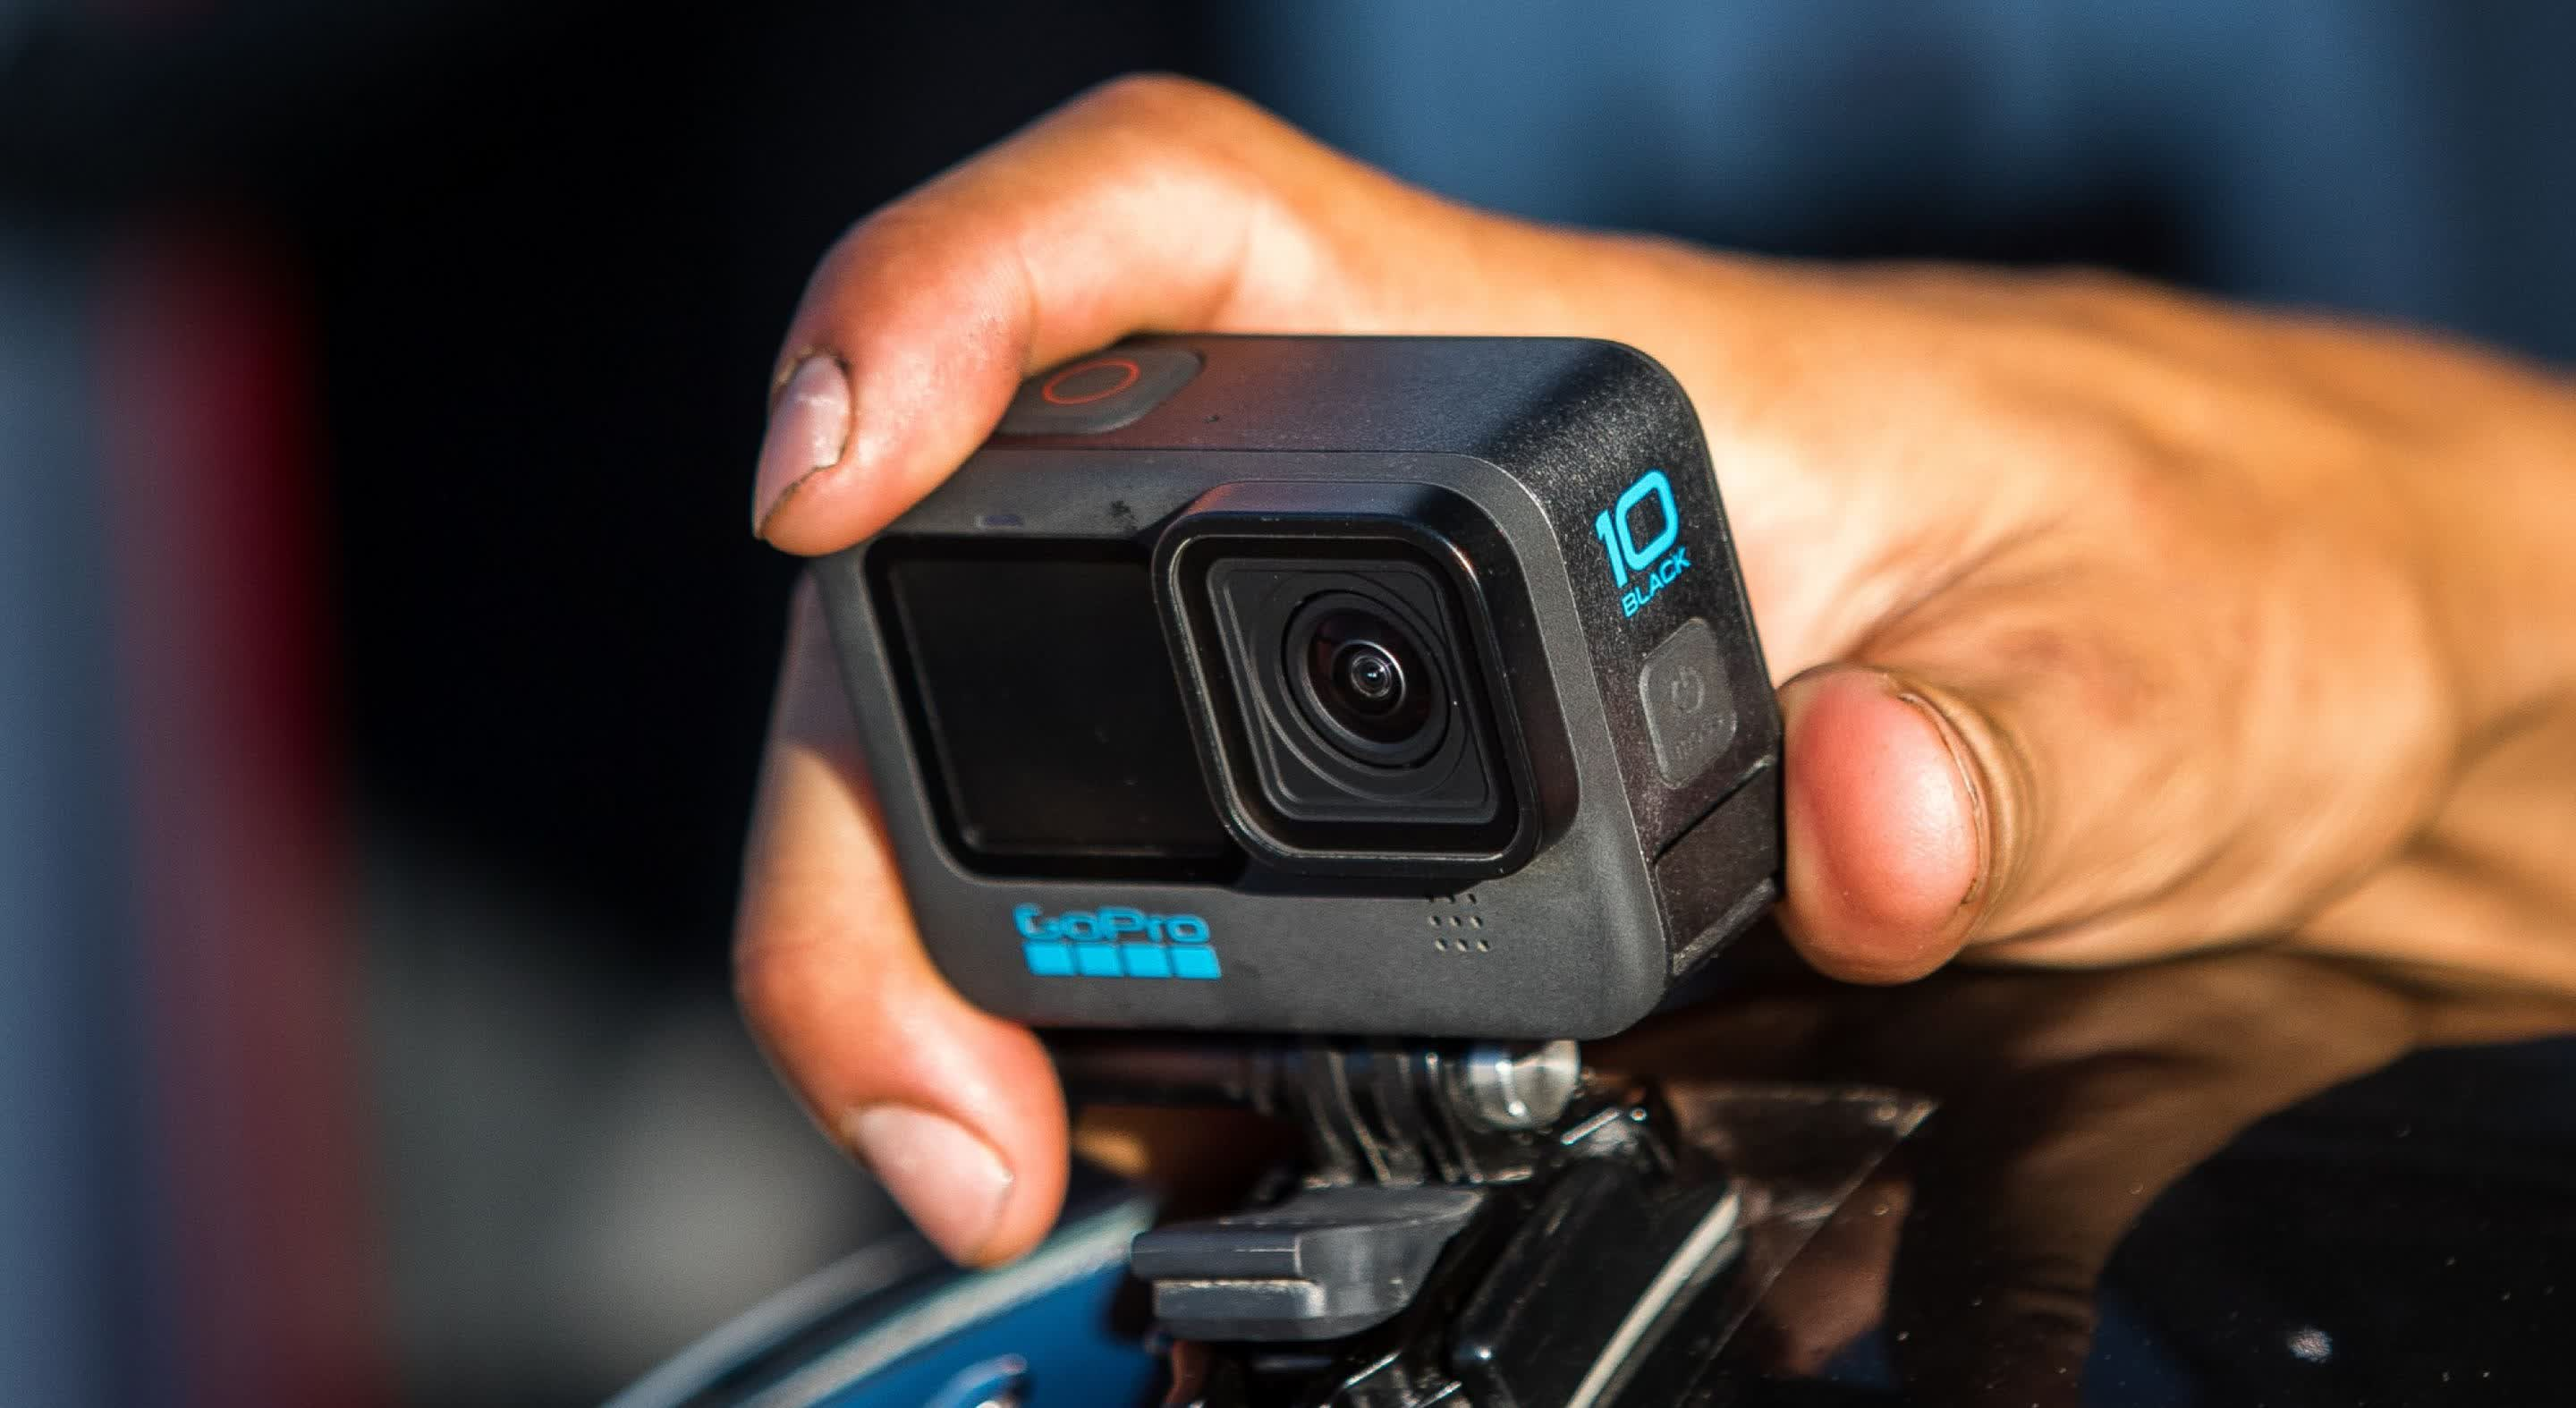 GoPro announces the Hero 10 Black action camera with a new processor and 5.3K60 video recording capabilities